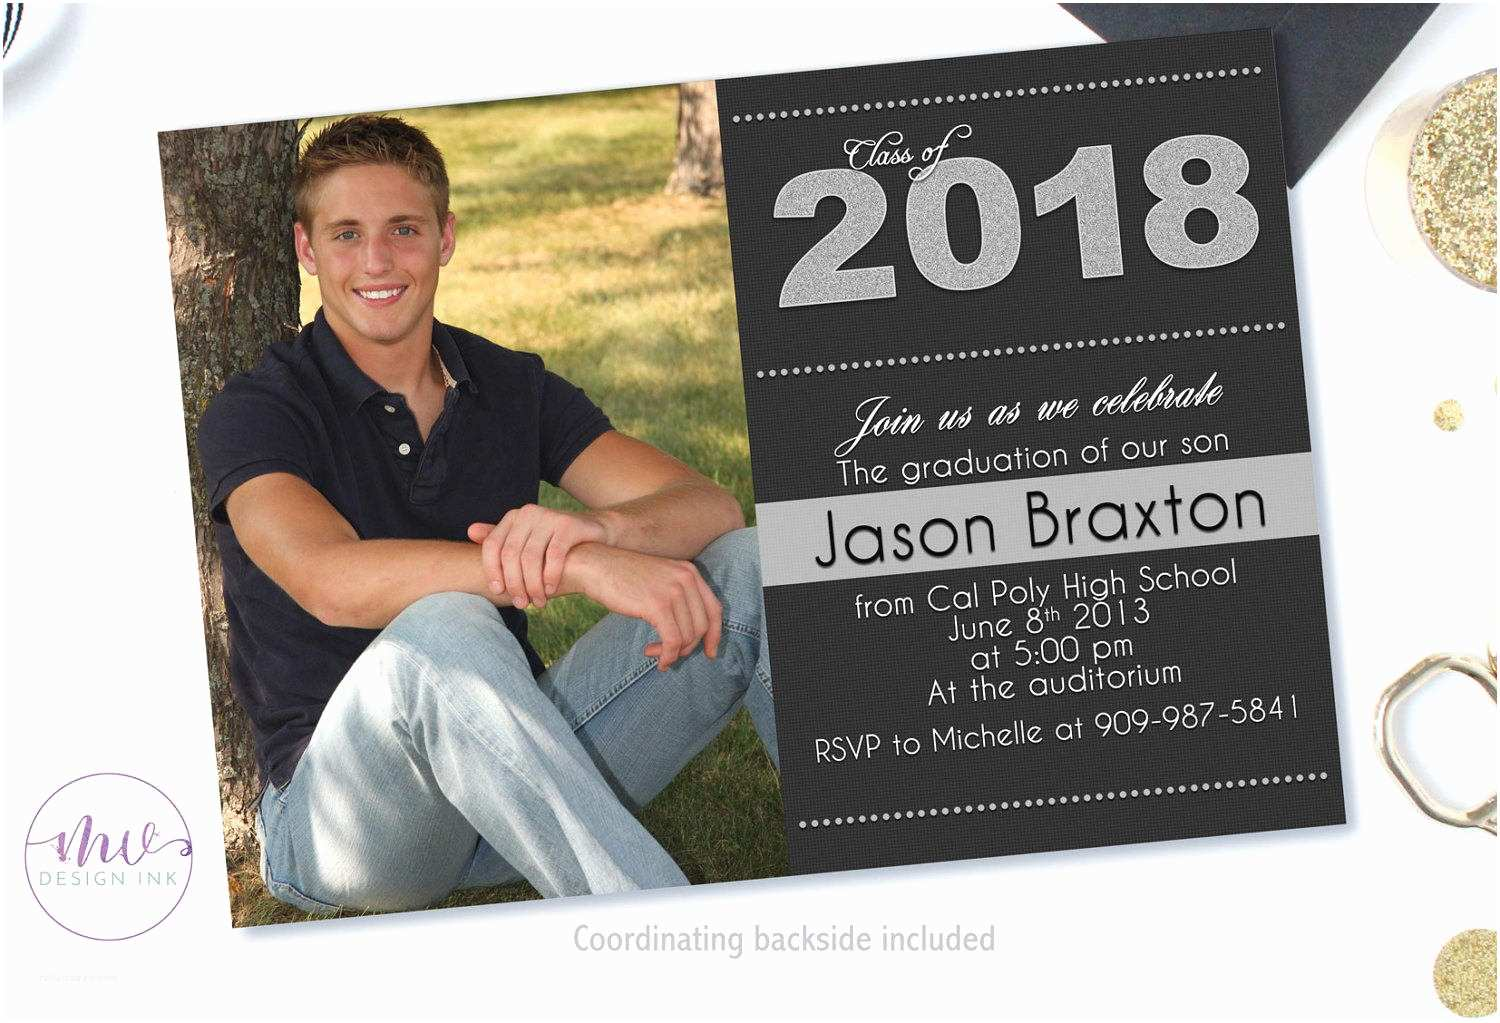 Graduation Party Invitation Ideas Graduation Invitation Graduation Party Invitations High